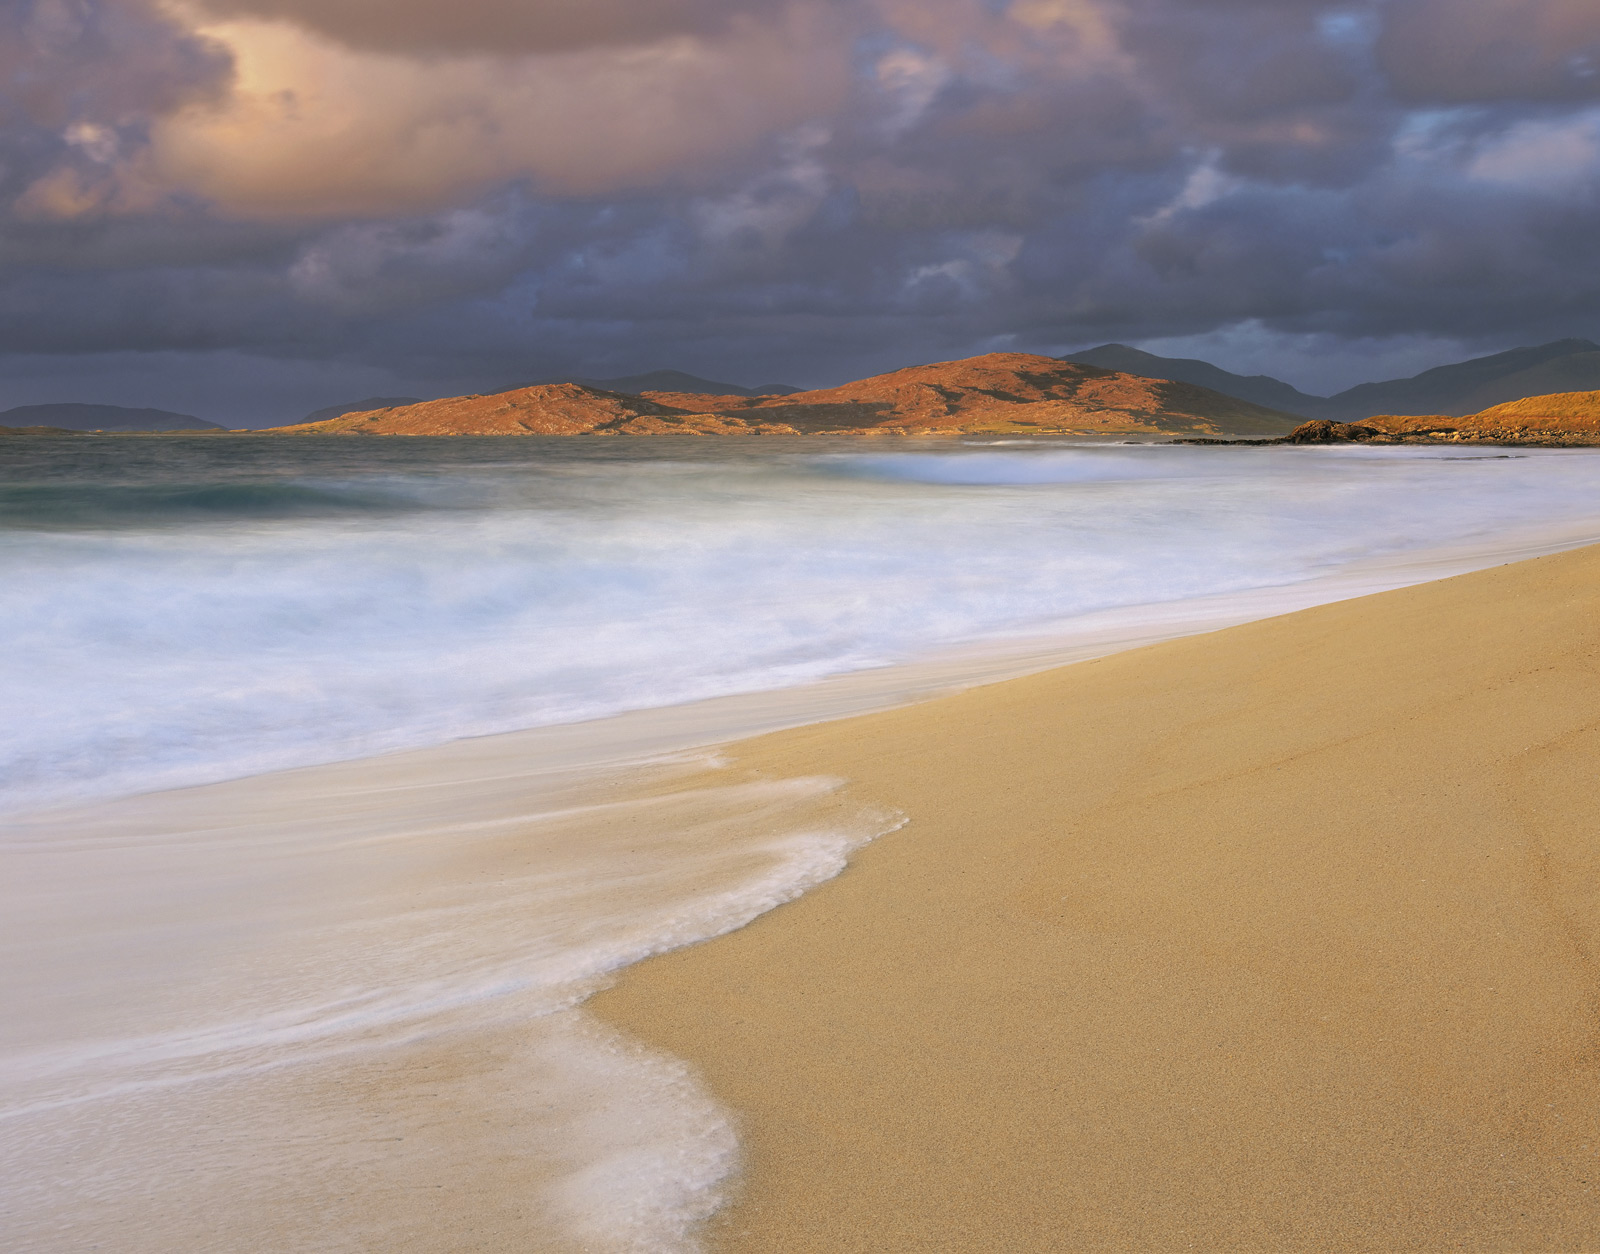 Just prior to an Atlantic storm bursting onto Traigh Mhor beach some of the finest light I have ever experienced washed over...